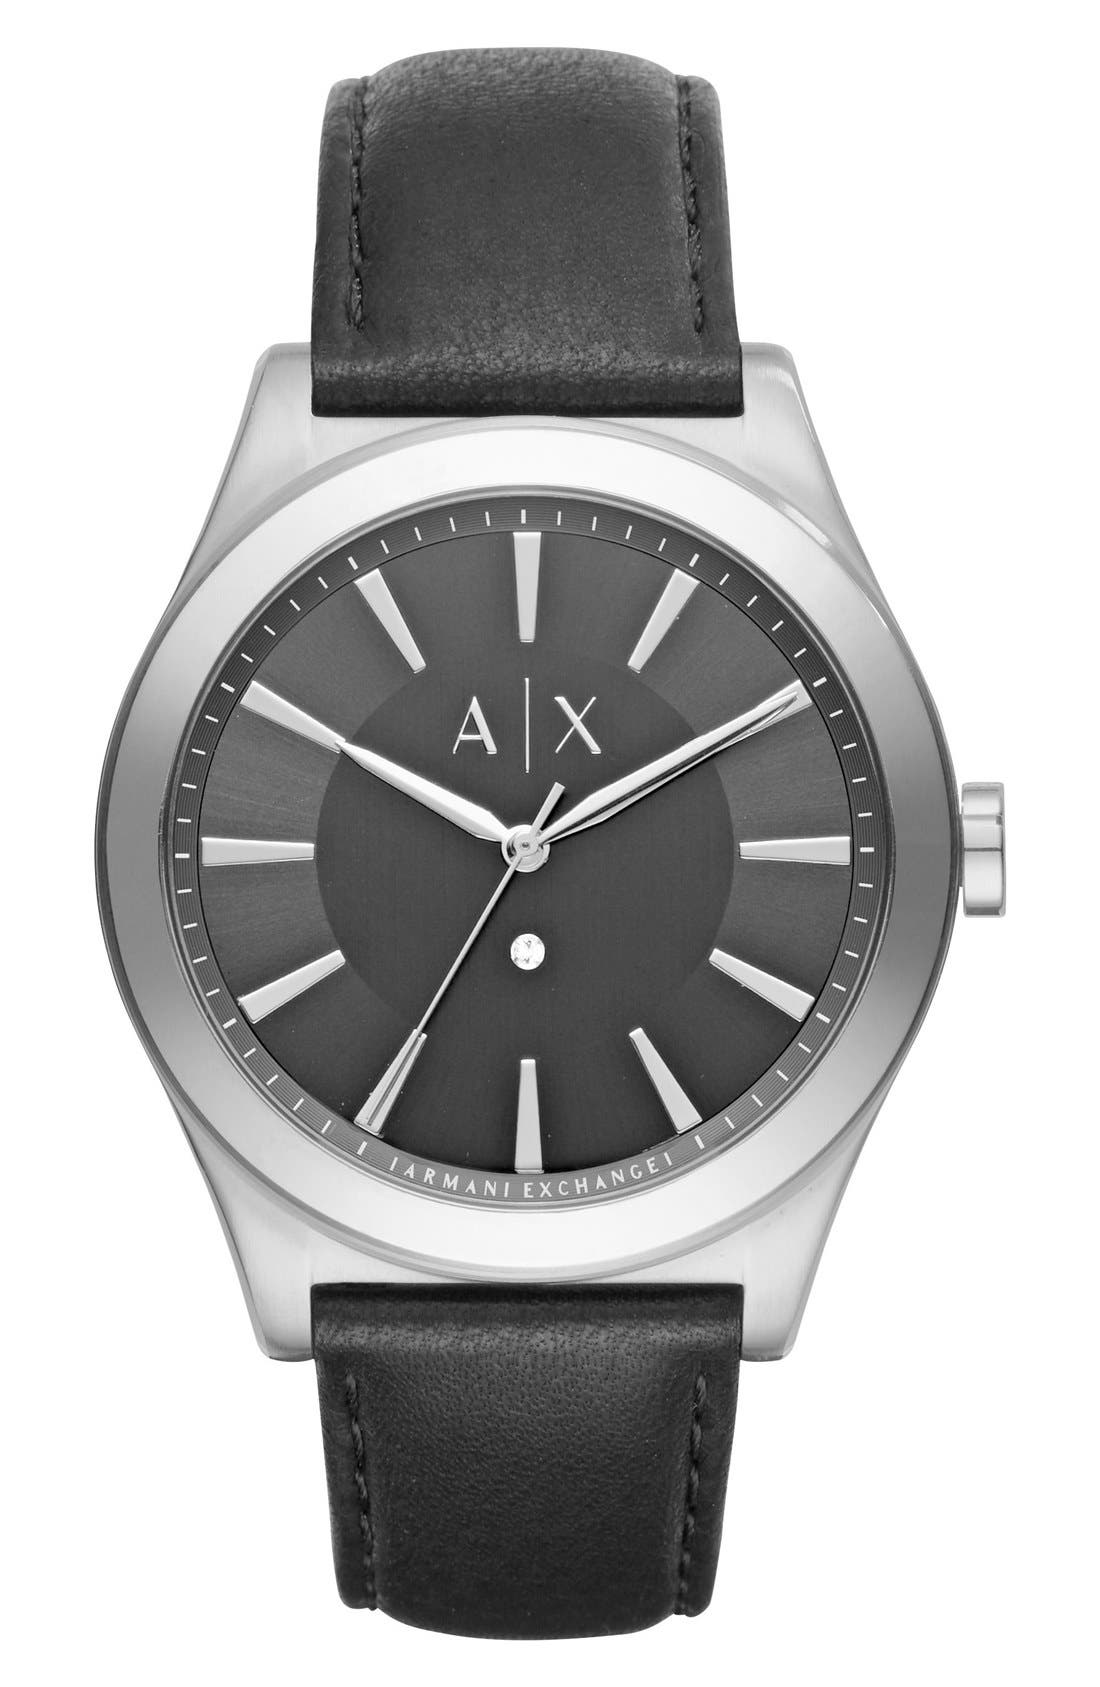 Main Image - AX Armani Exchange Leather Strap Watch, 44mm